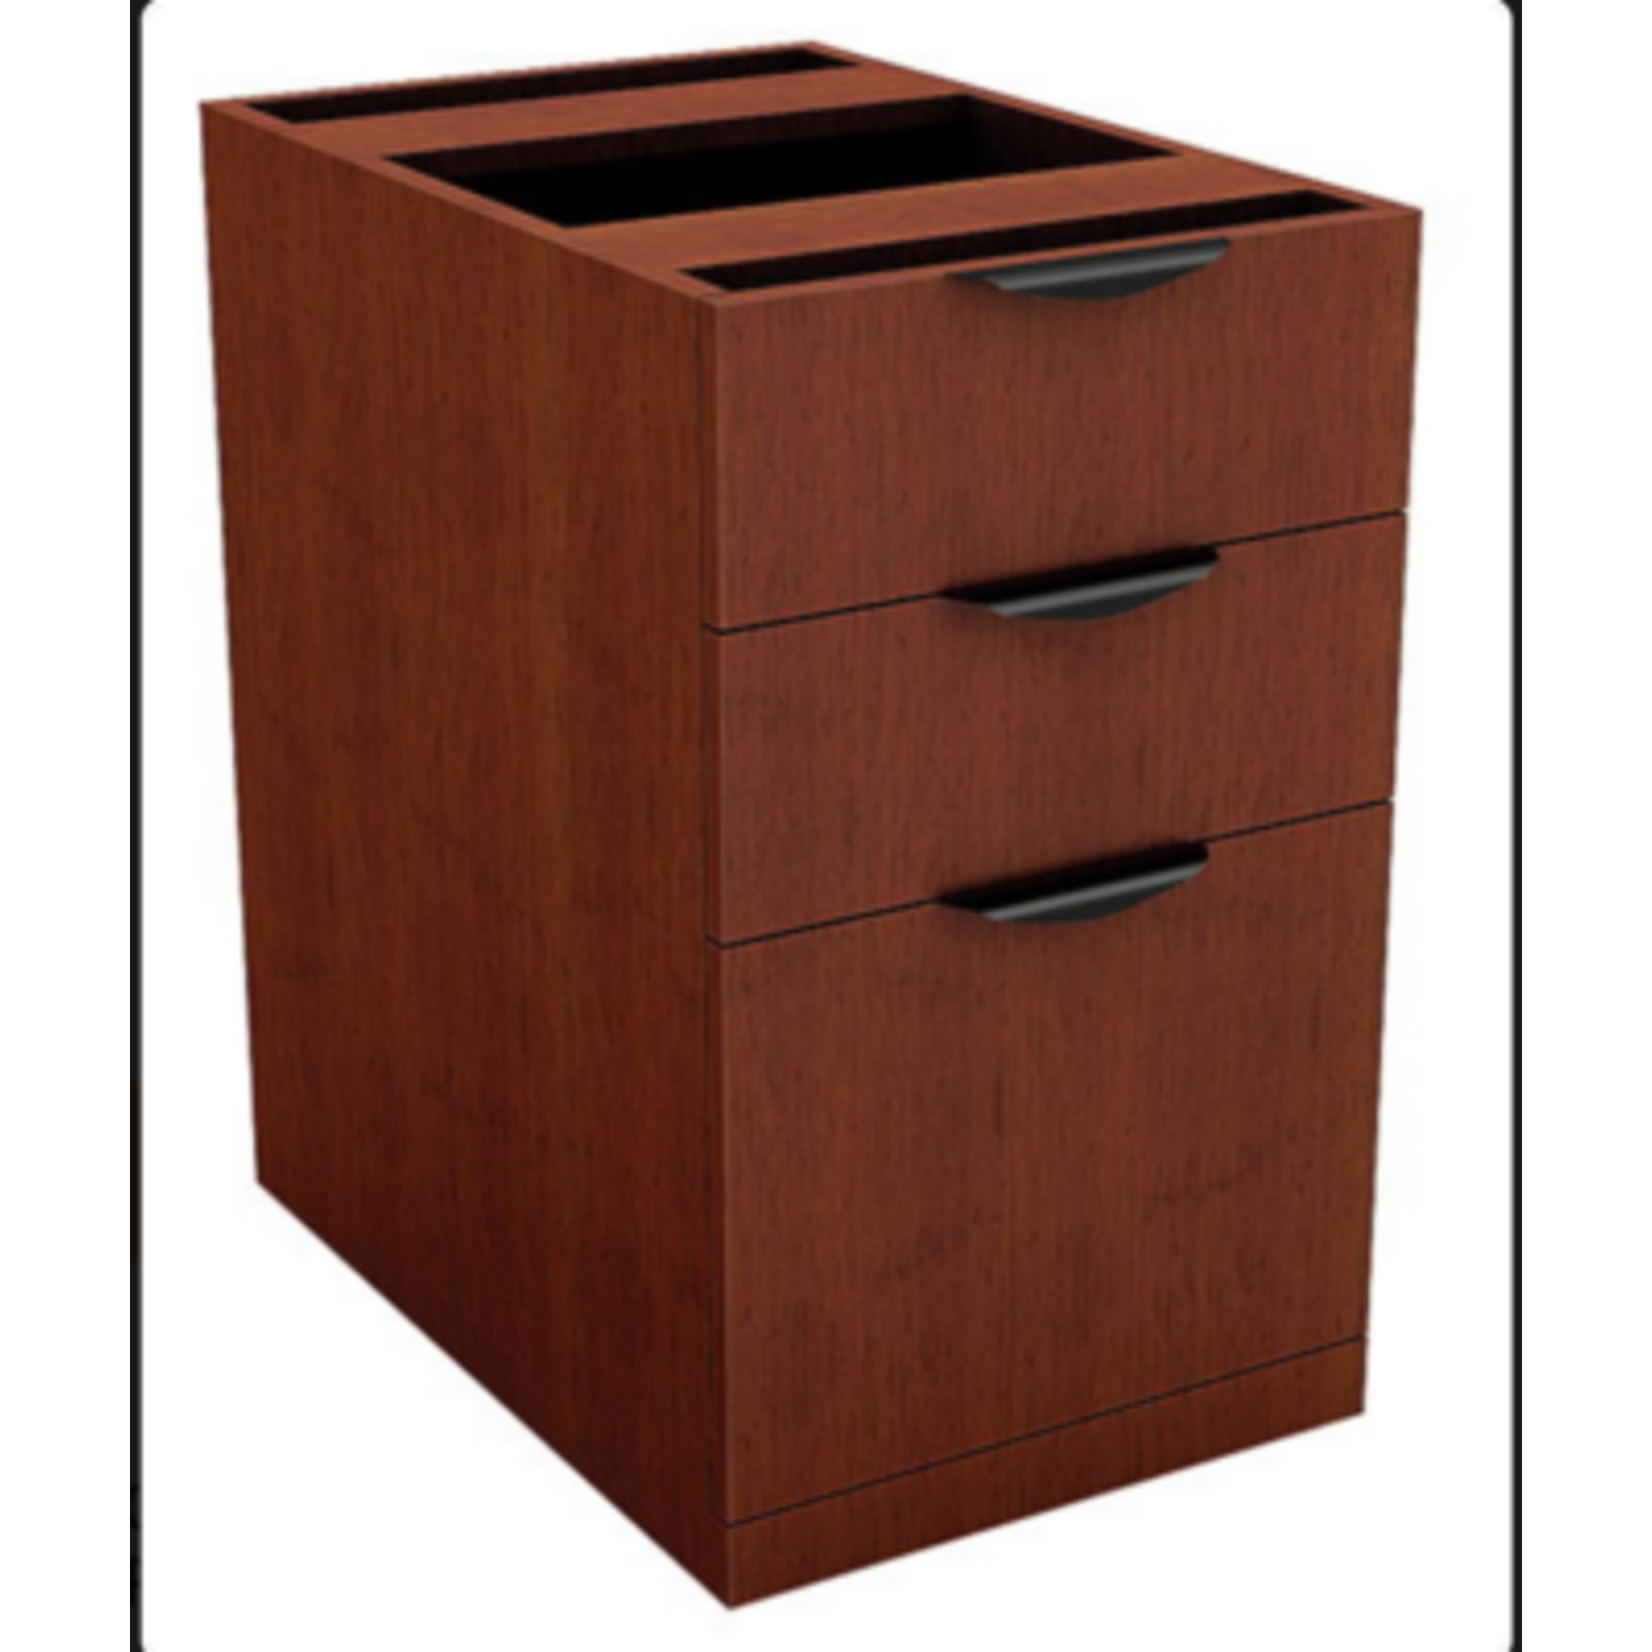 8305 Performance Deluxe Undermount File Cabinet